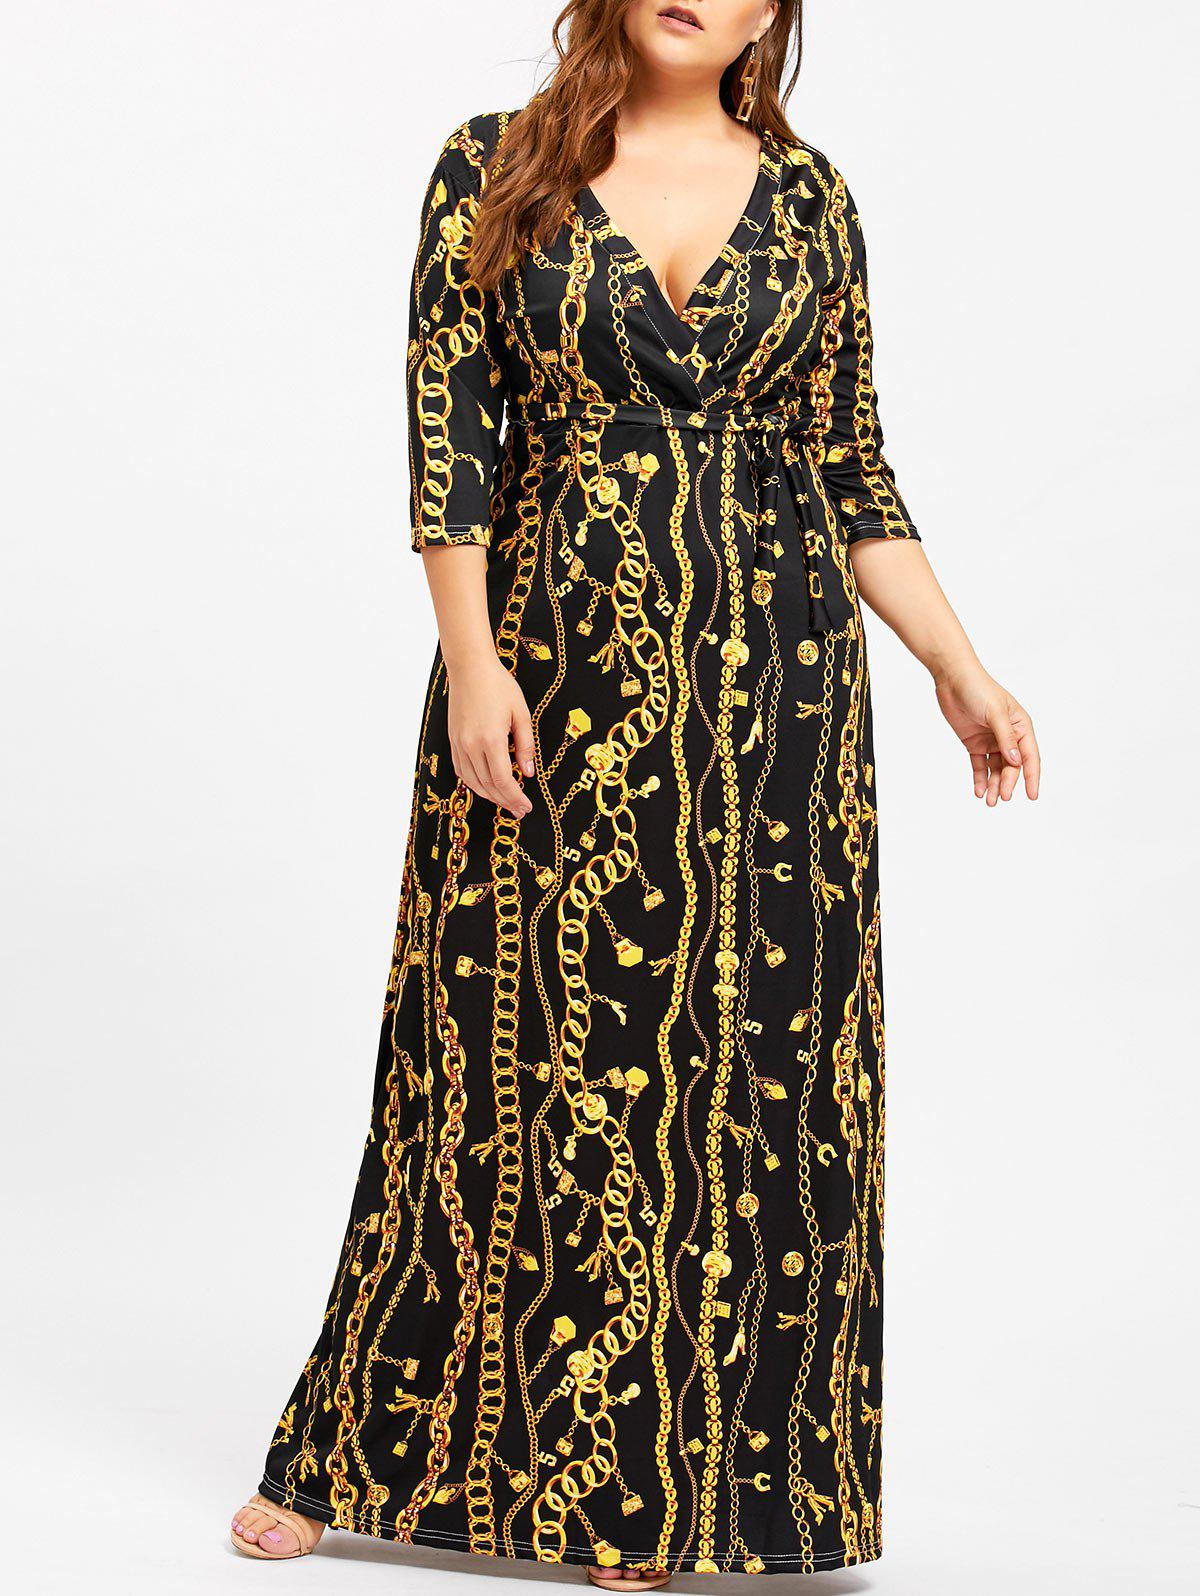 Chain Print Plus Size Low Cut DressWOMEN<br><br>Size: 3XL; Color: BLACK; Style: Casual; Material: Cotton,Polyester; Silhouette: Sheath; Dresses Length: Floor-Length; Neckline: Plunging Neck; Sleeve Length: 3/4 Length Sleeves; Pattern Type: Lock; With Belt: Yes; Season: Fall,Spring; Weight: 0.5300kg; Package Contents: 1 x Dress  1 x Belt;